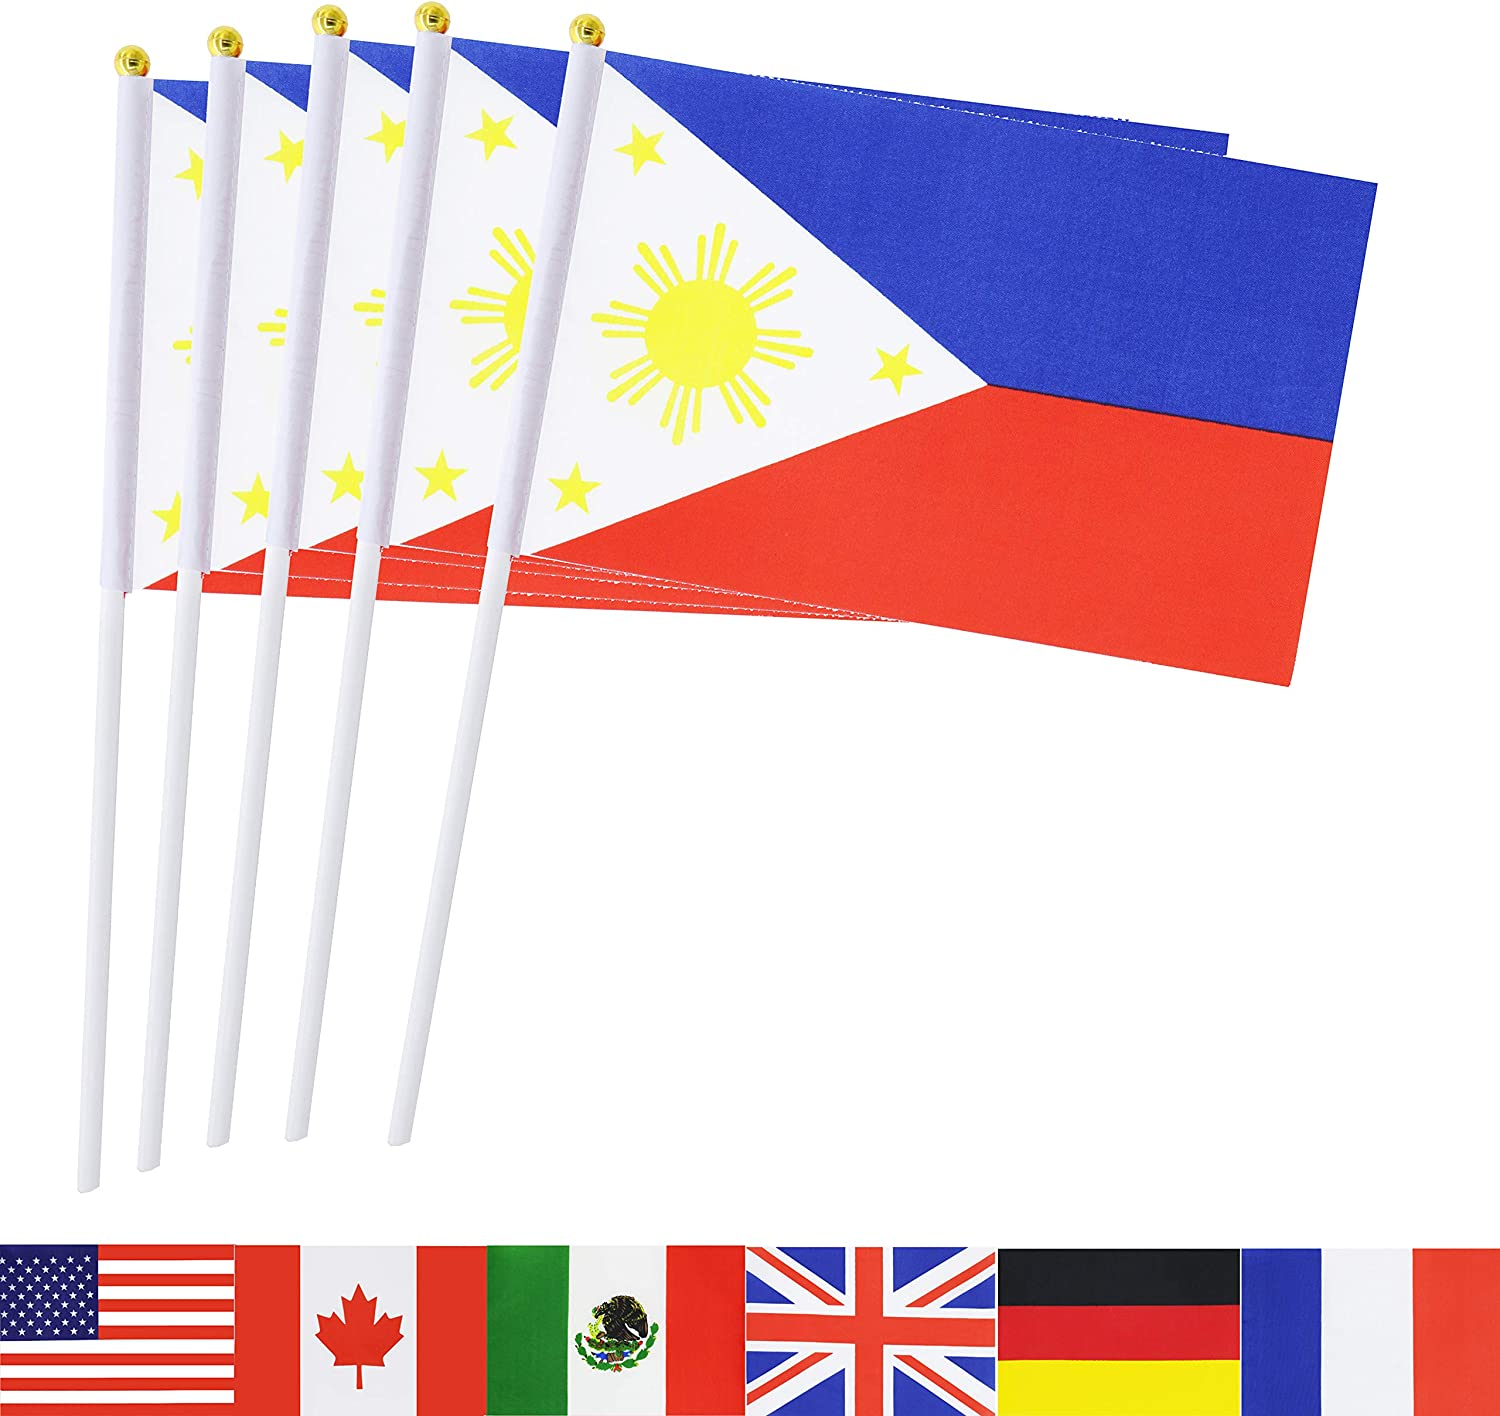 TSMD Philippines Stick Flag, 50 Pack Hand Held Small Filipino National Flags On Stick,International World Country Stick Flags Banners,Party Decorations for Olympics,Sports Clubs,Festival Events